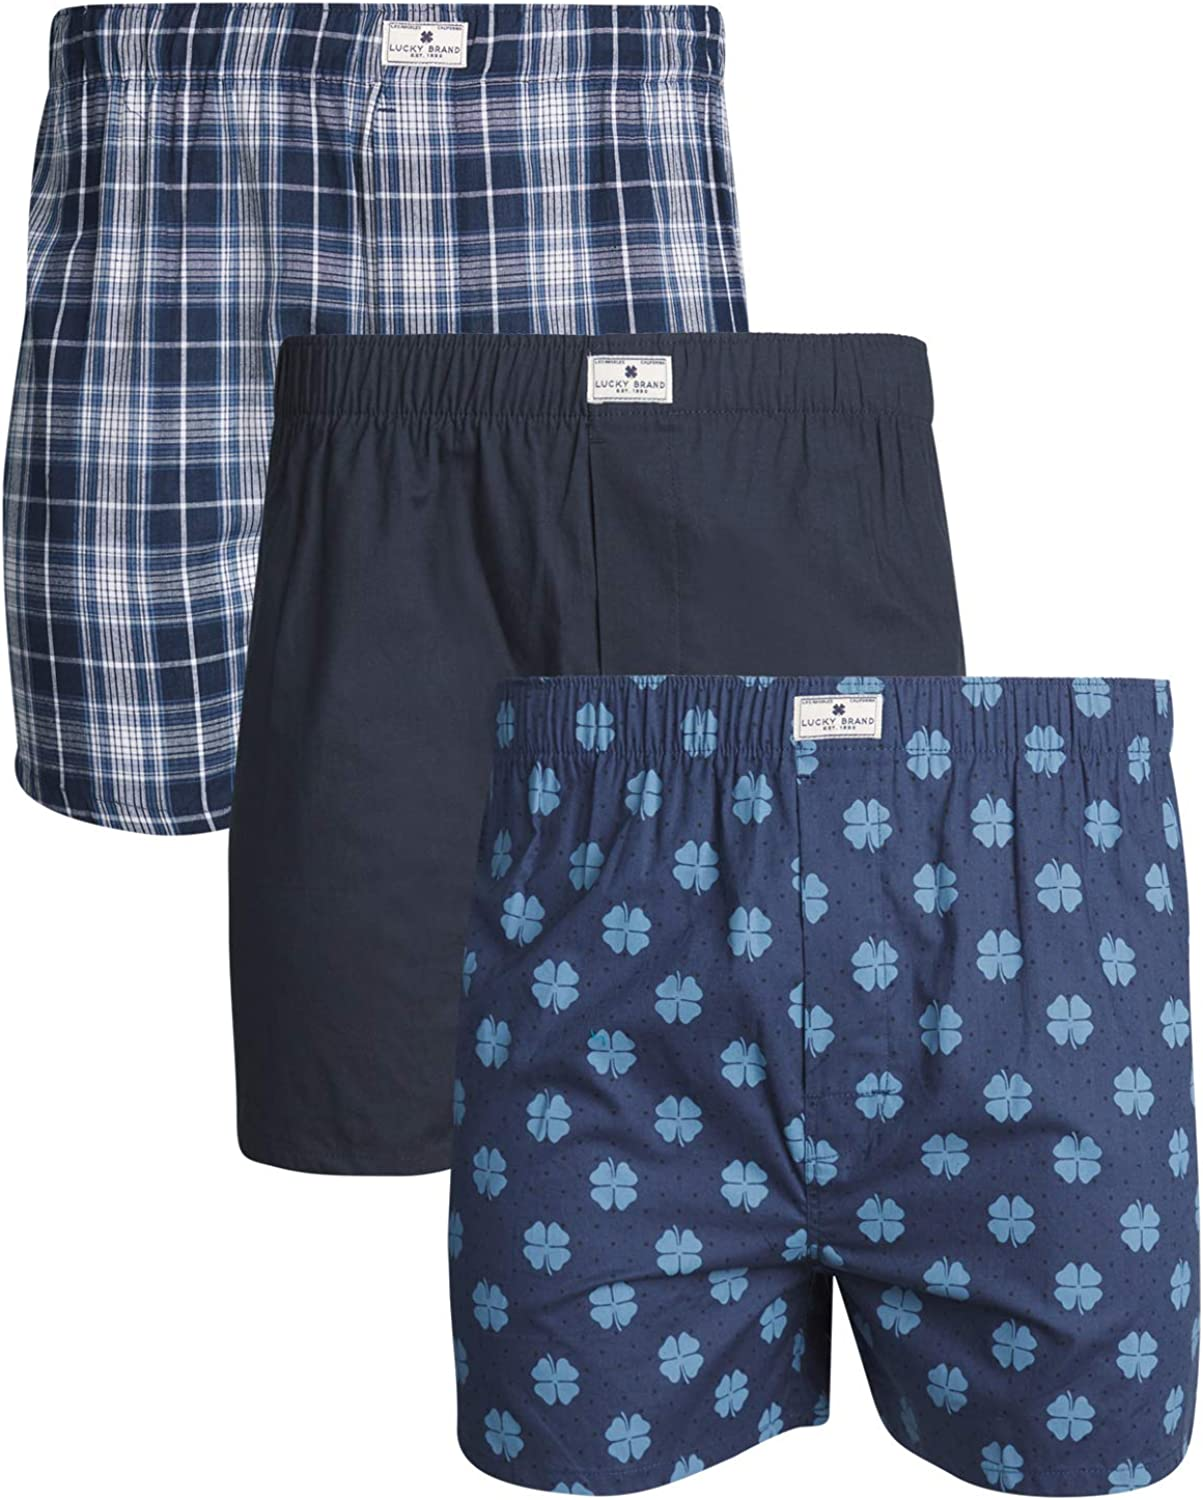 Lucky Brand Men's Woven Cotton Classic Boxer Underwear with Functional Fly, 3-Pack